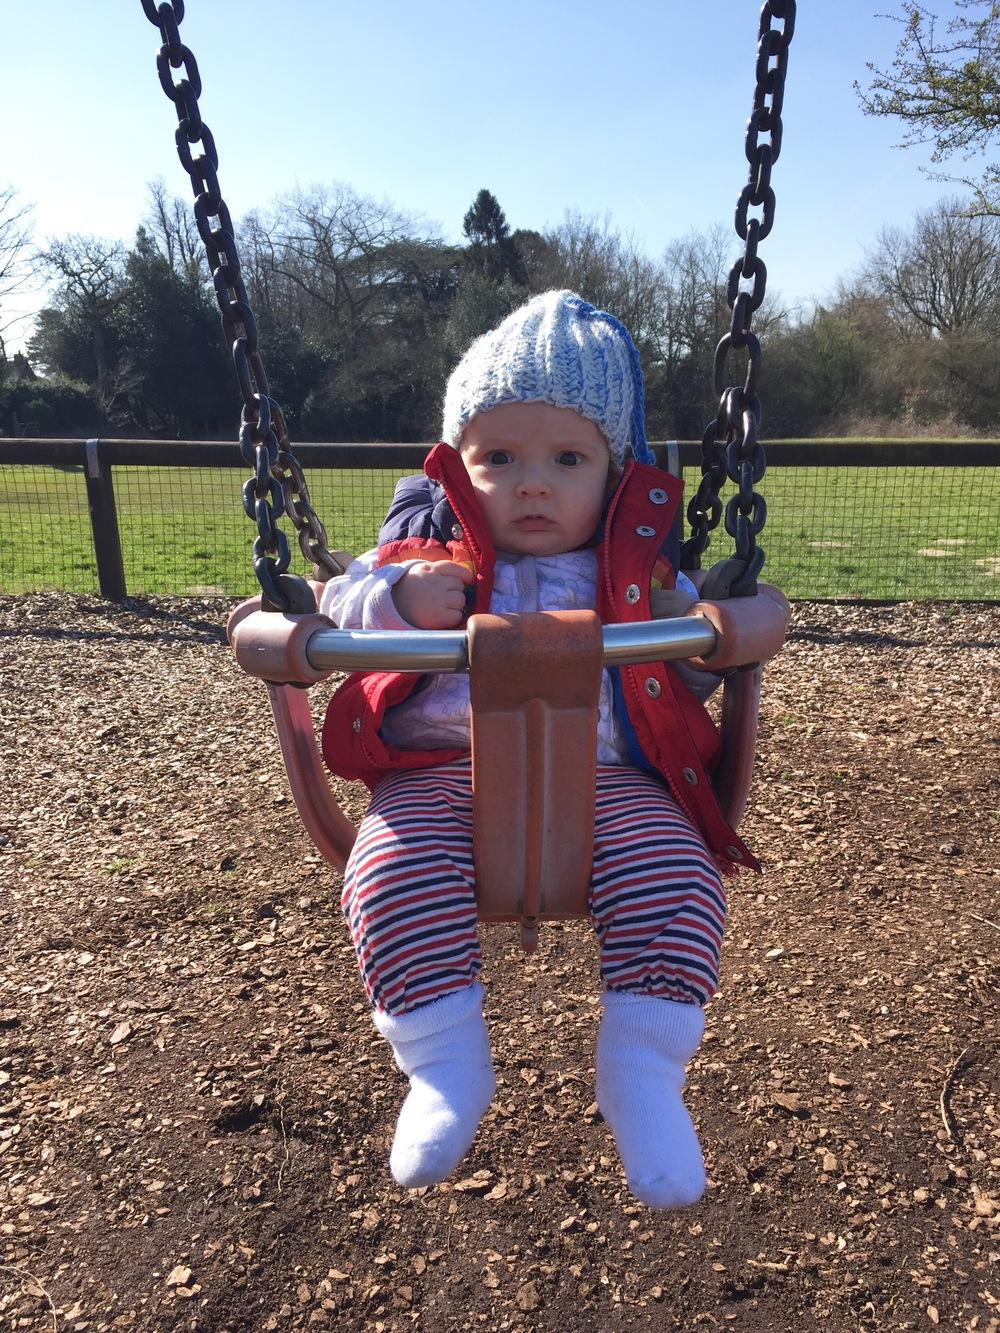 RESEARCH SHOWS 91% OF A CHILD'S WEEKEND IS SPENT ON A SWING